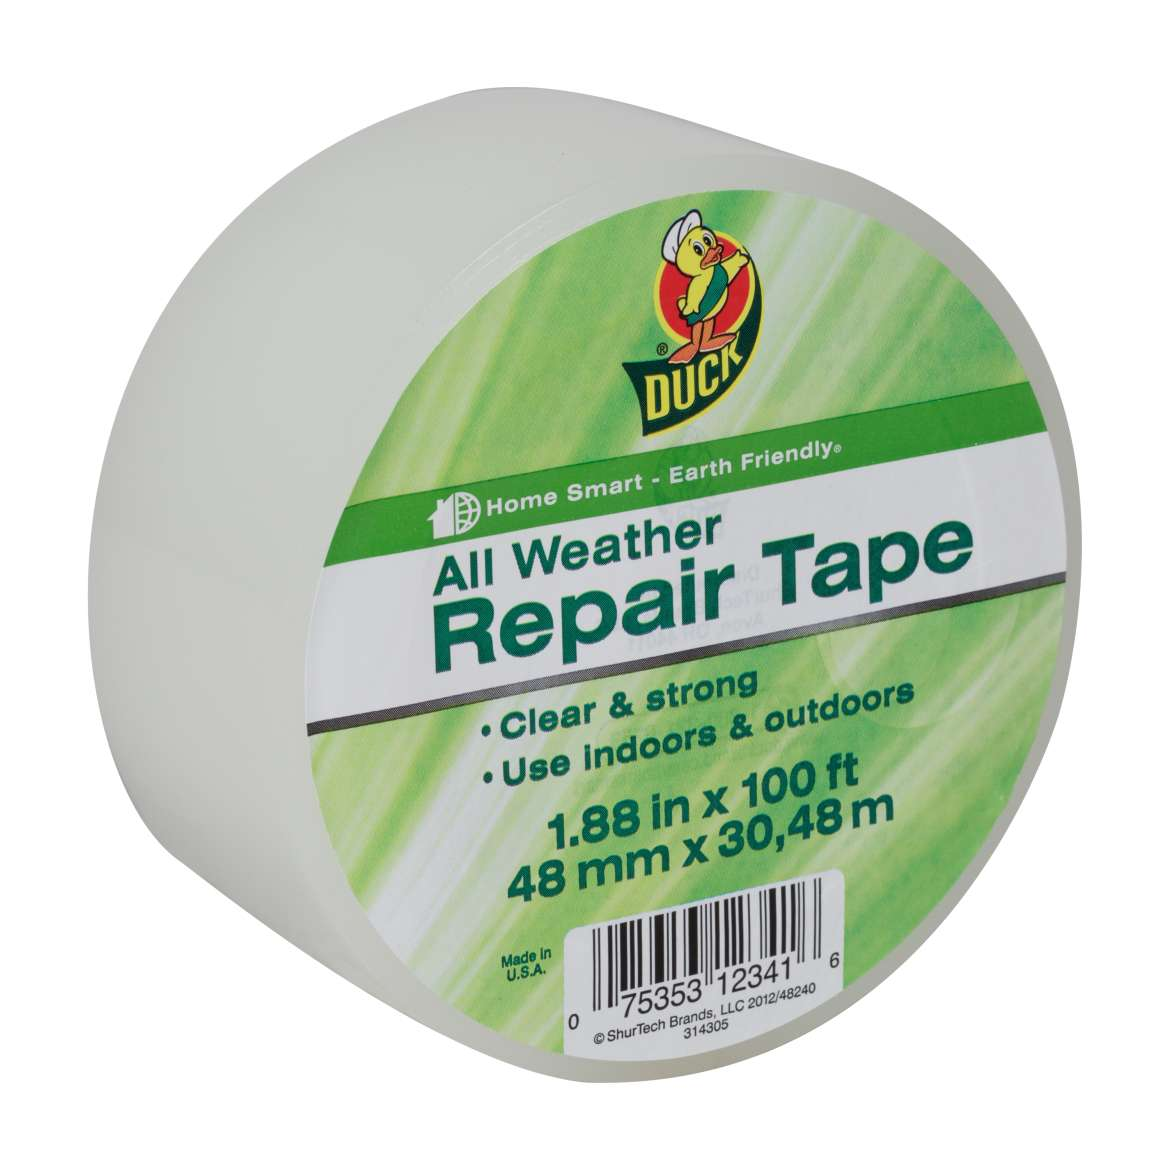 All Weather Repair Tape